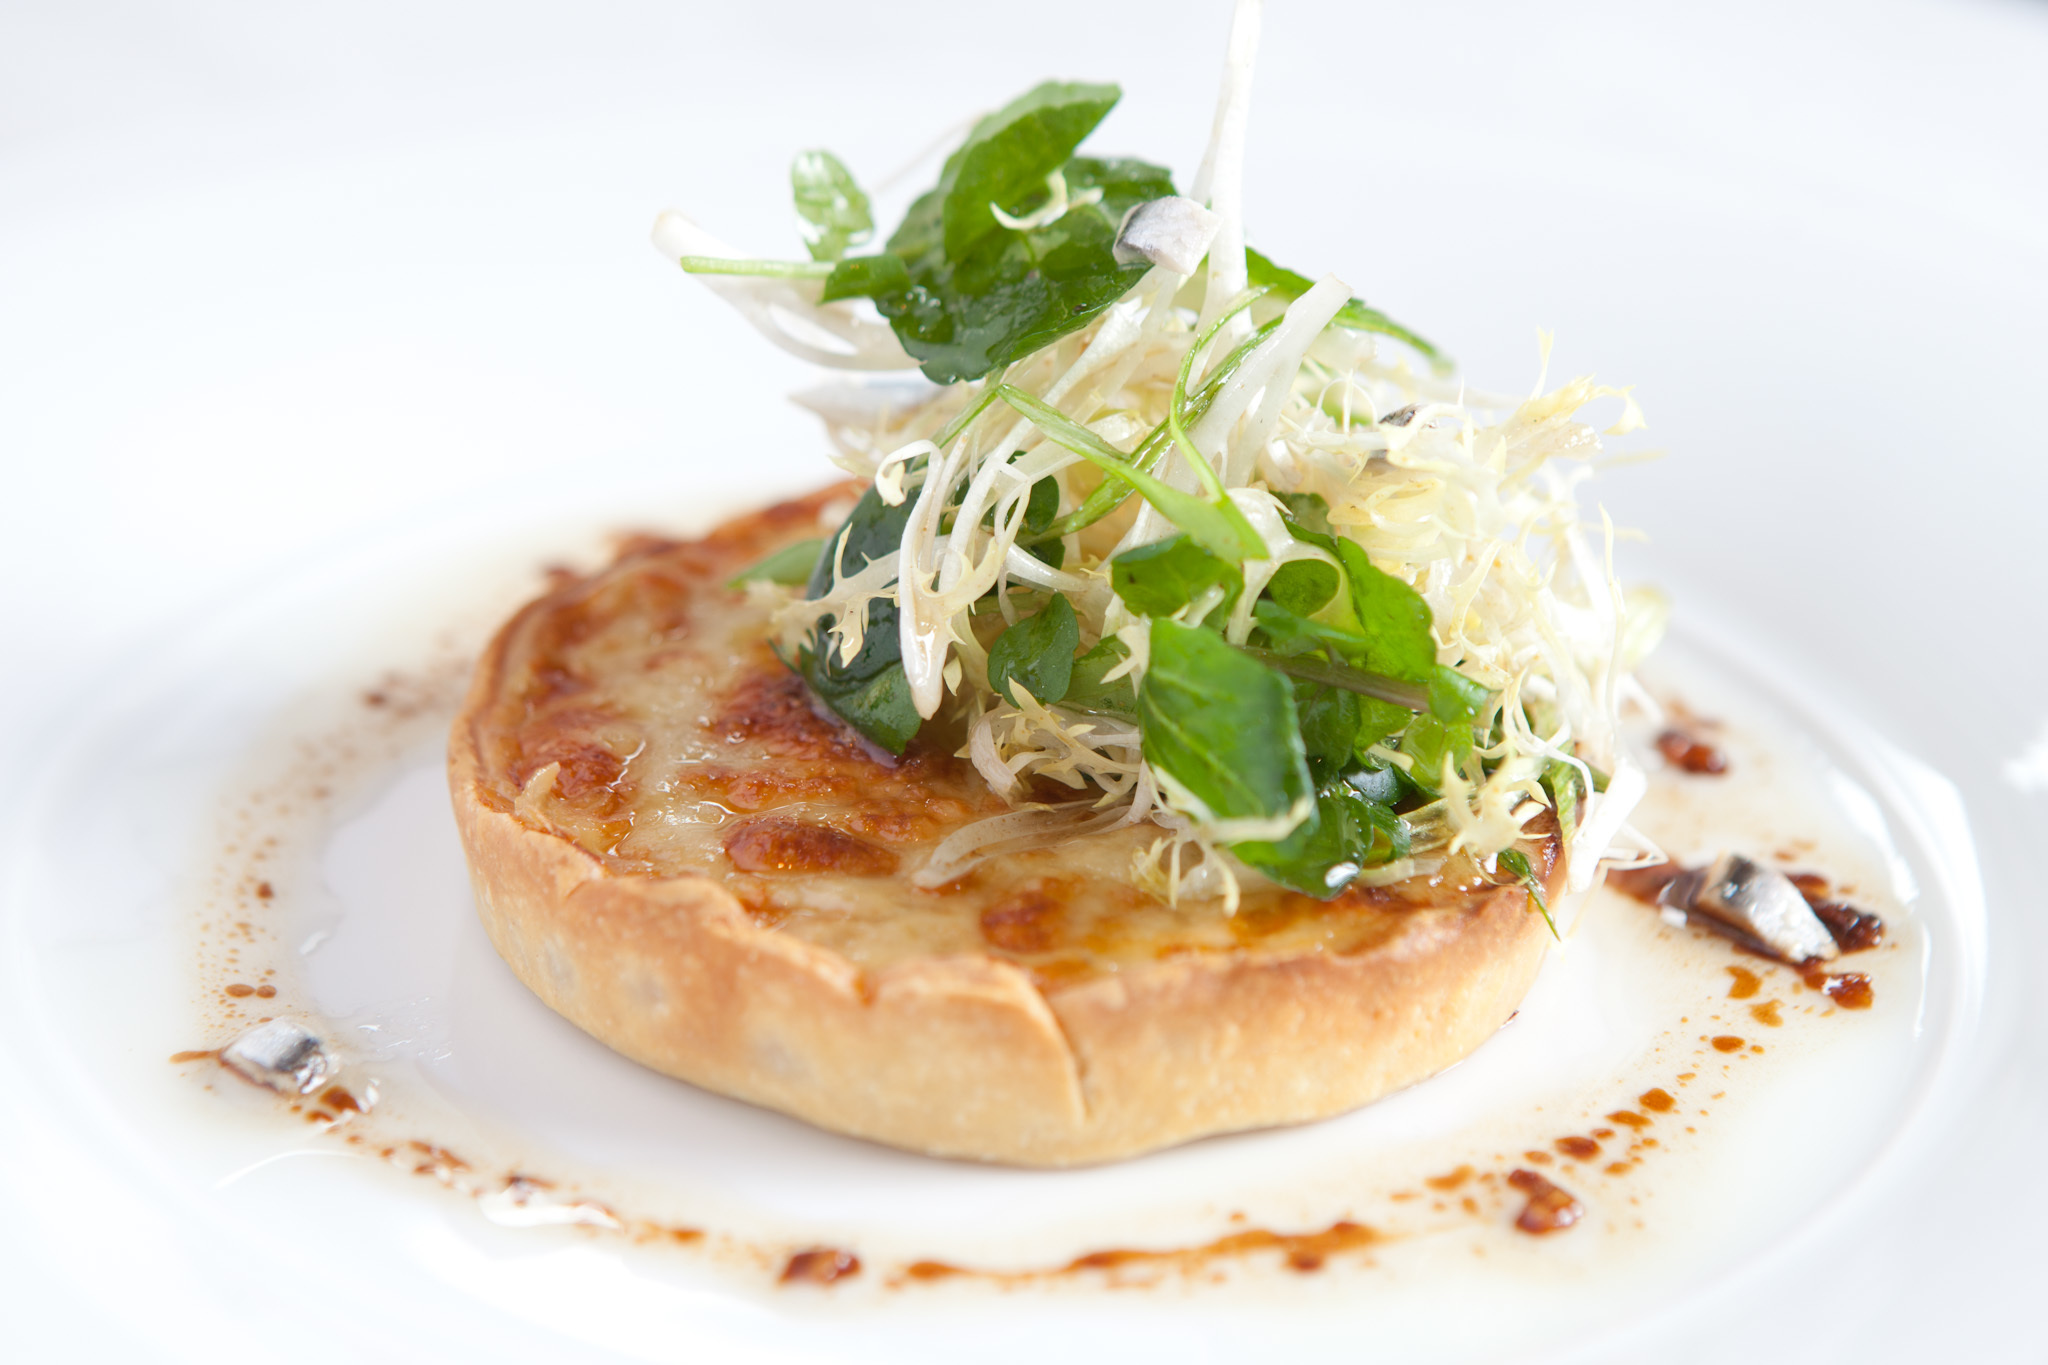 Onion tart at Next Restaurant Paris Bistro.